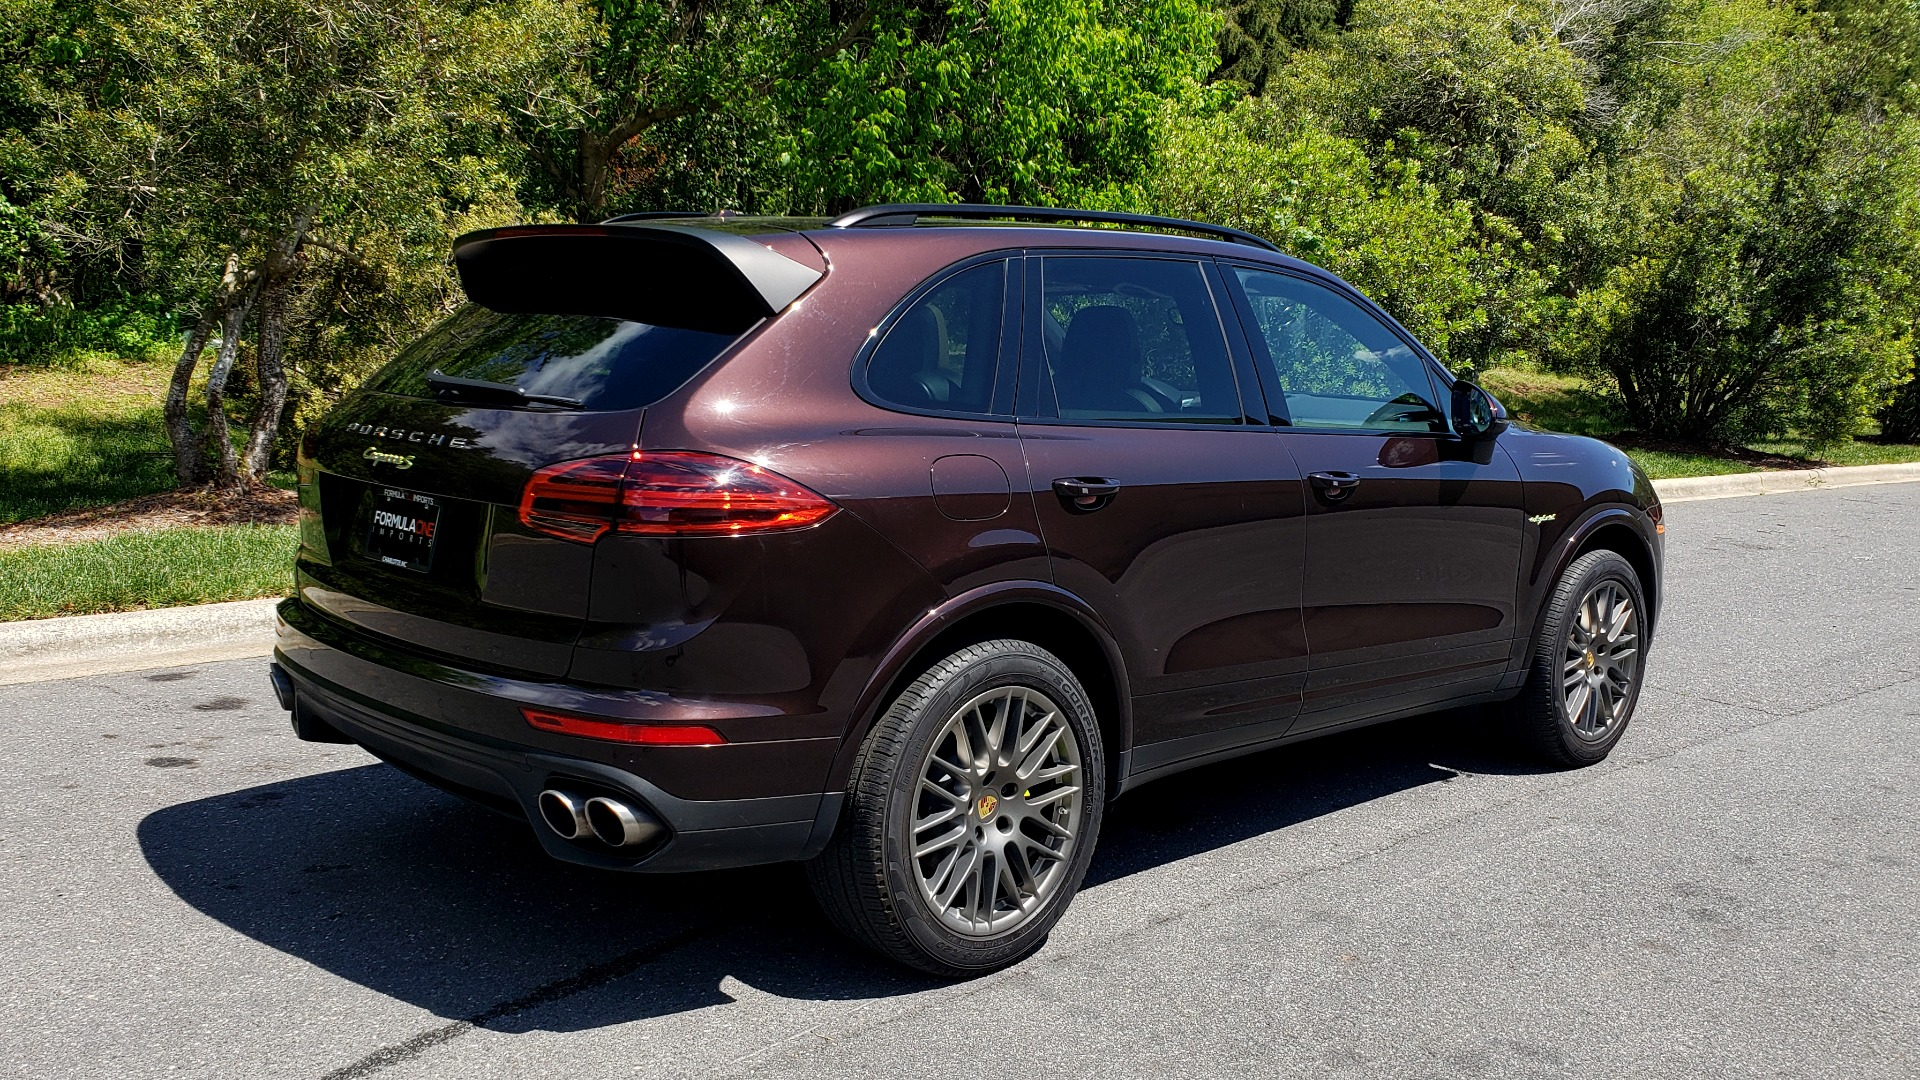 Used 2017 Porsche CAYENNE S E-HYBRID PLATINUM EDITION for sale Sold at Formula Imports in Charlotte NC 28227 6